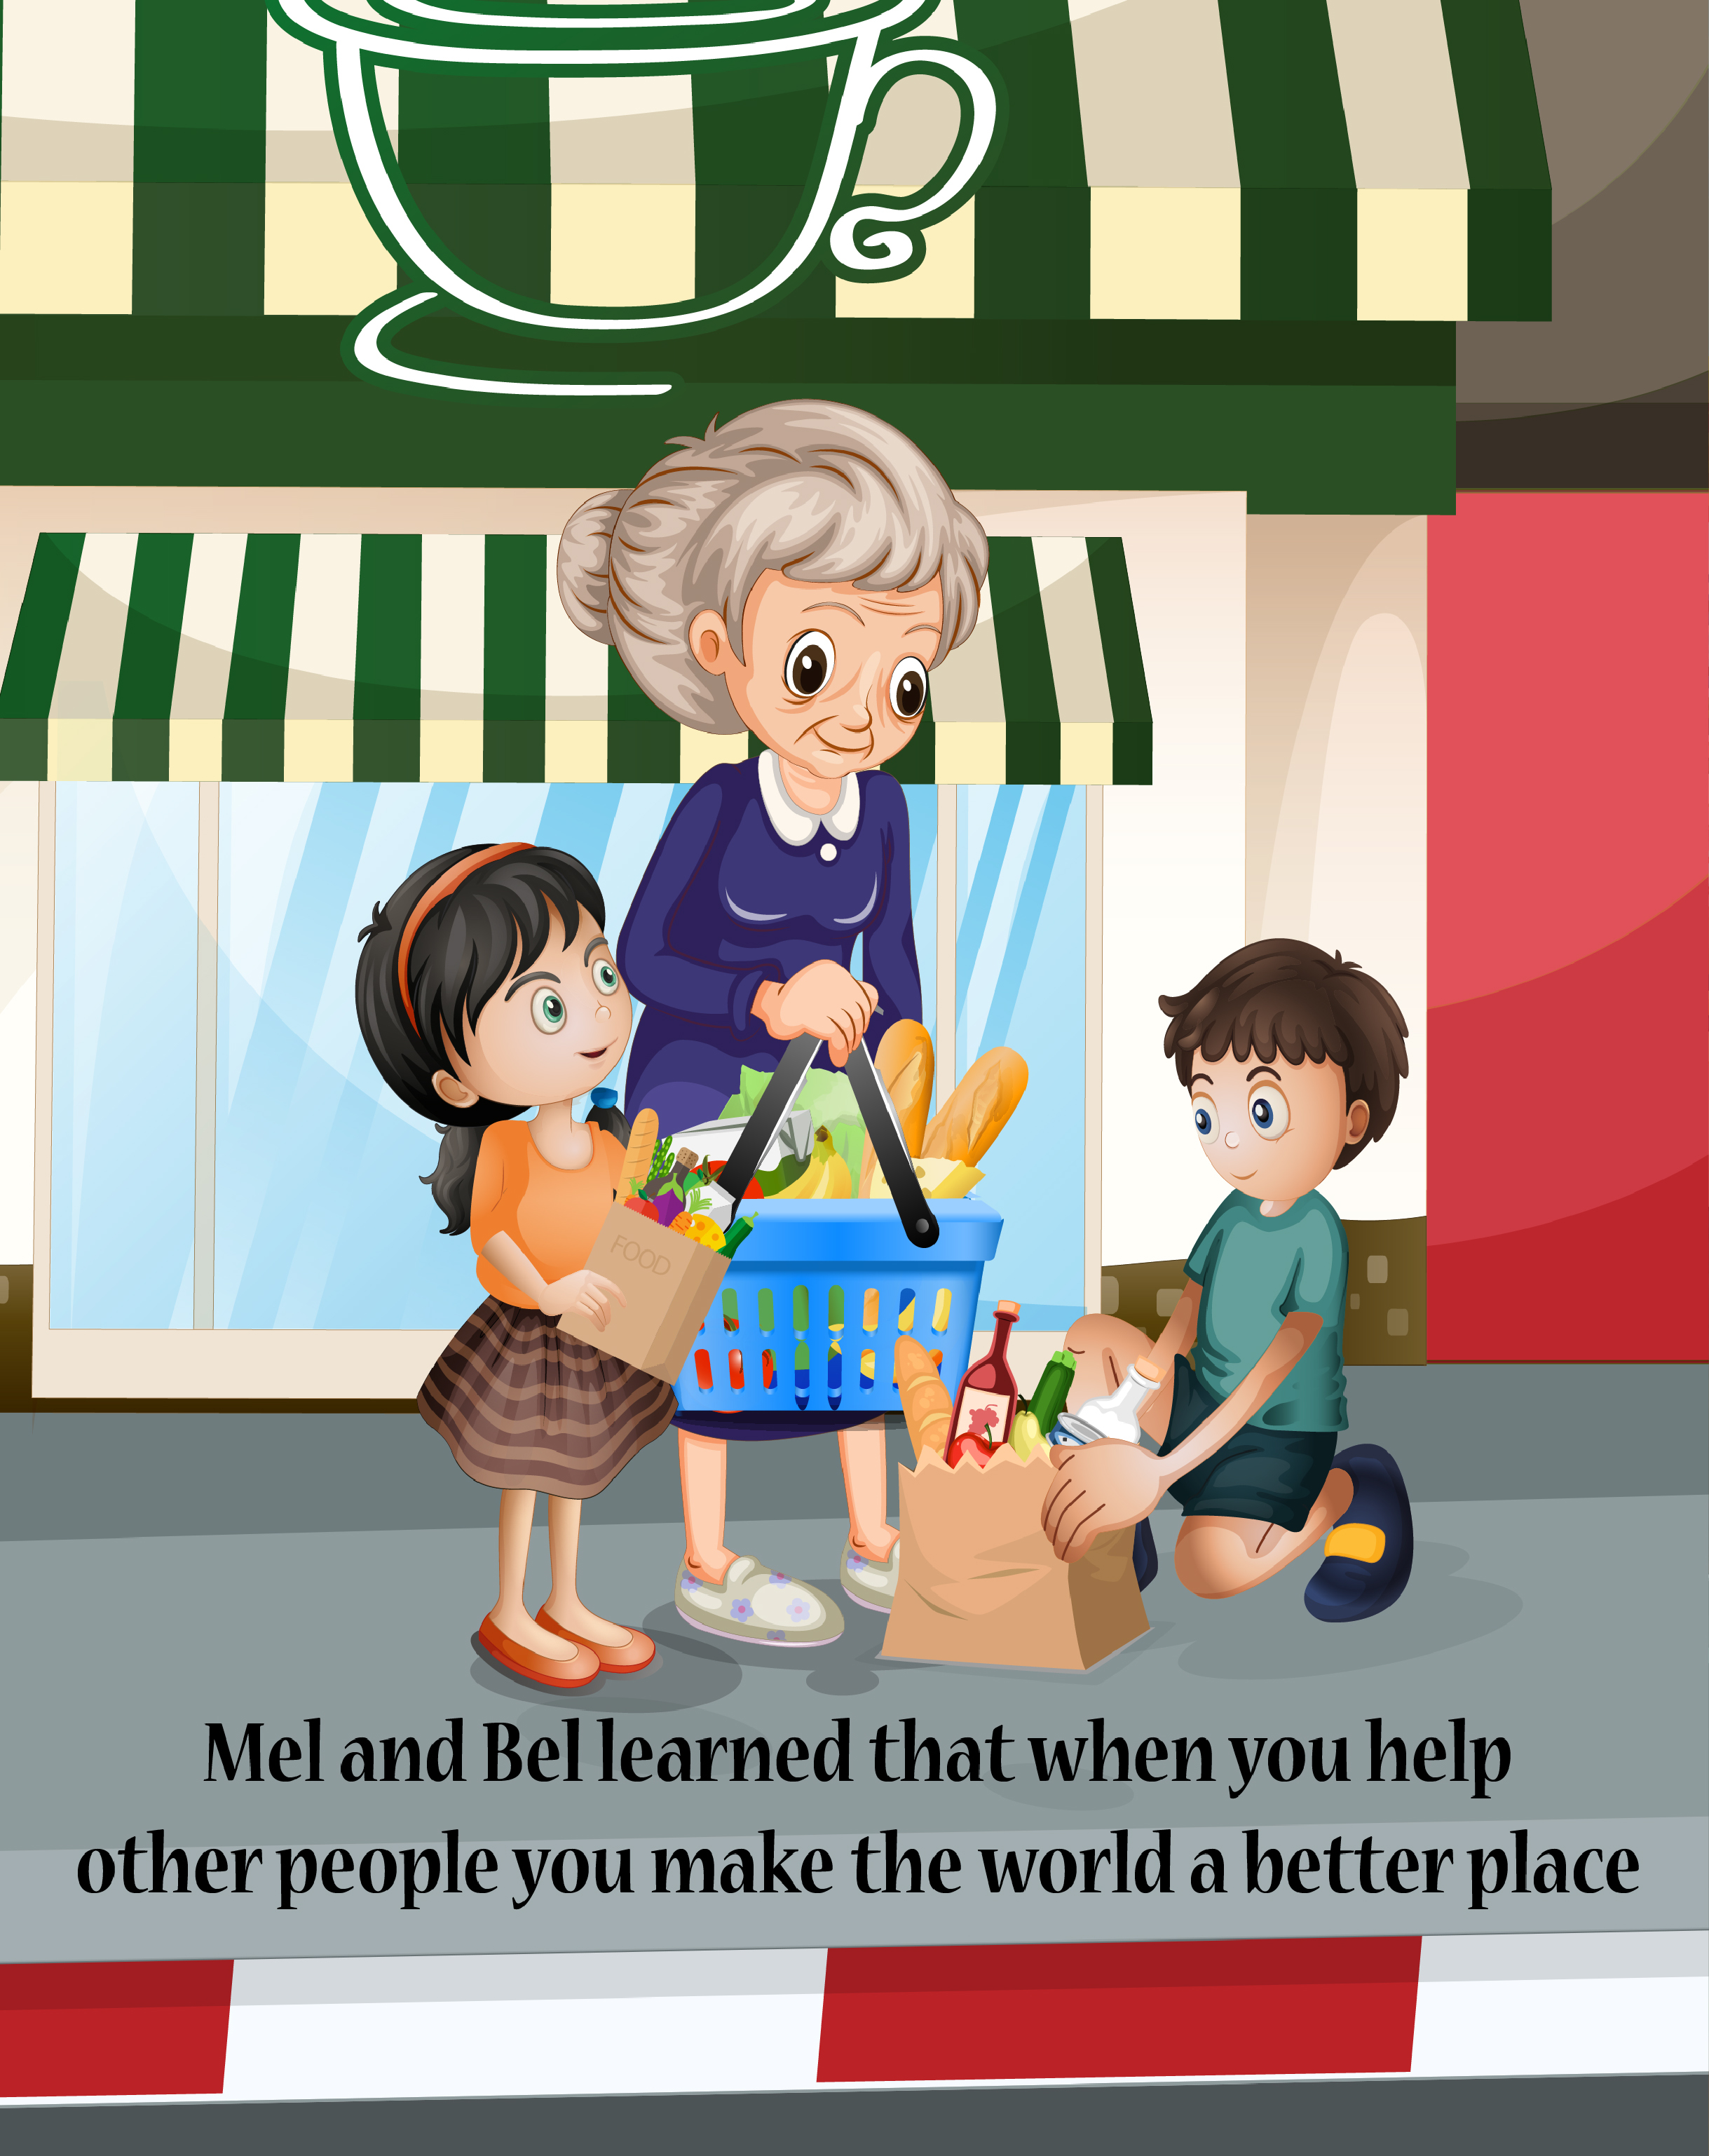 Teaching Kids Values: Helping others